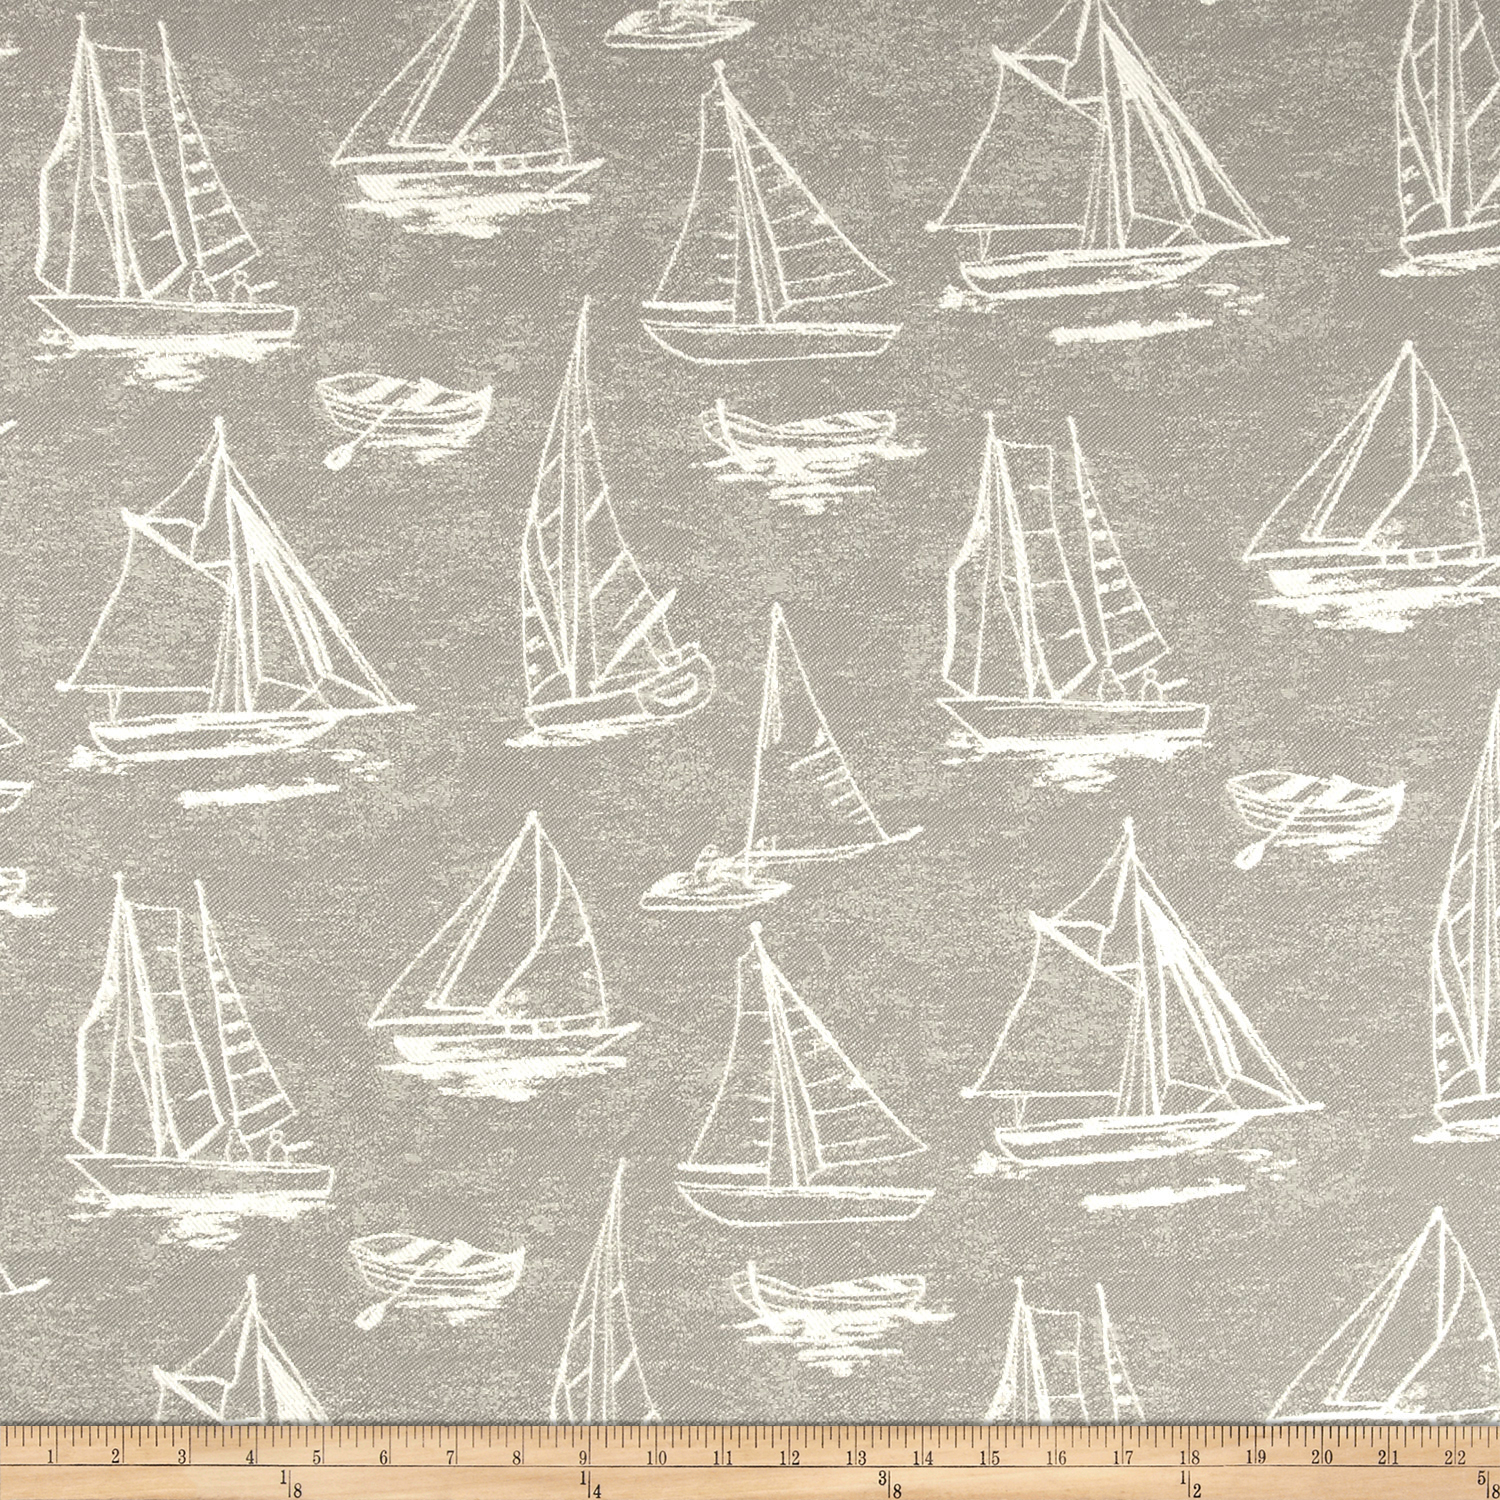 Covington Outdoor Solution Dyed Spindrift Dolphin Fabric